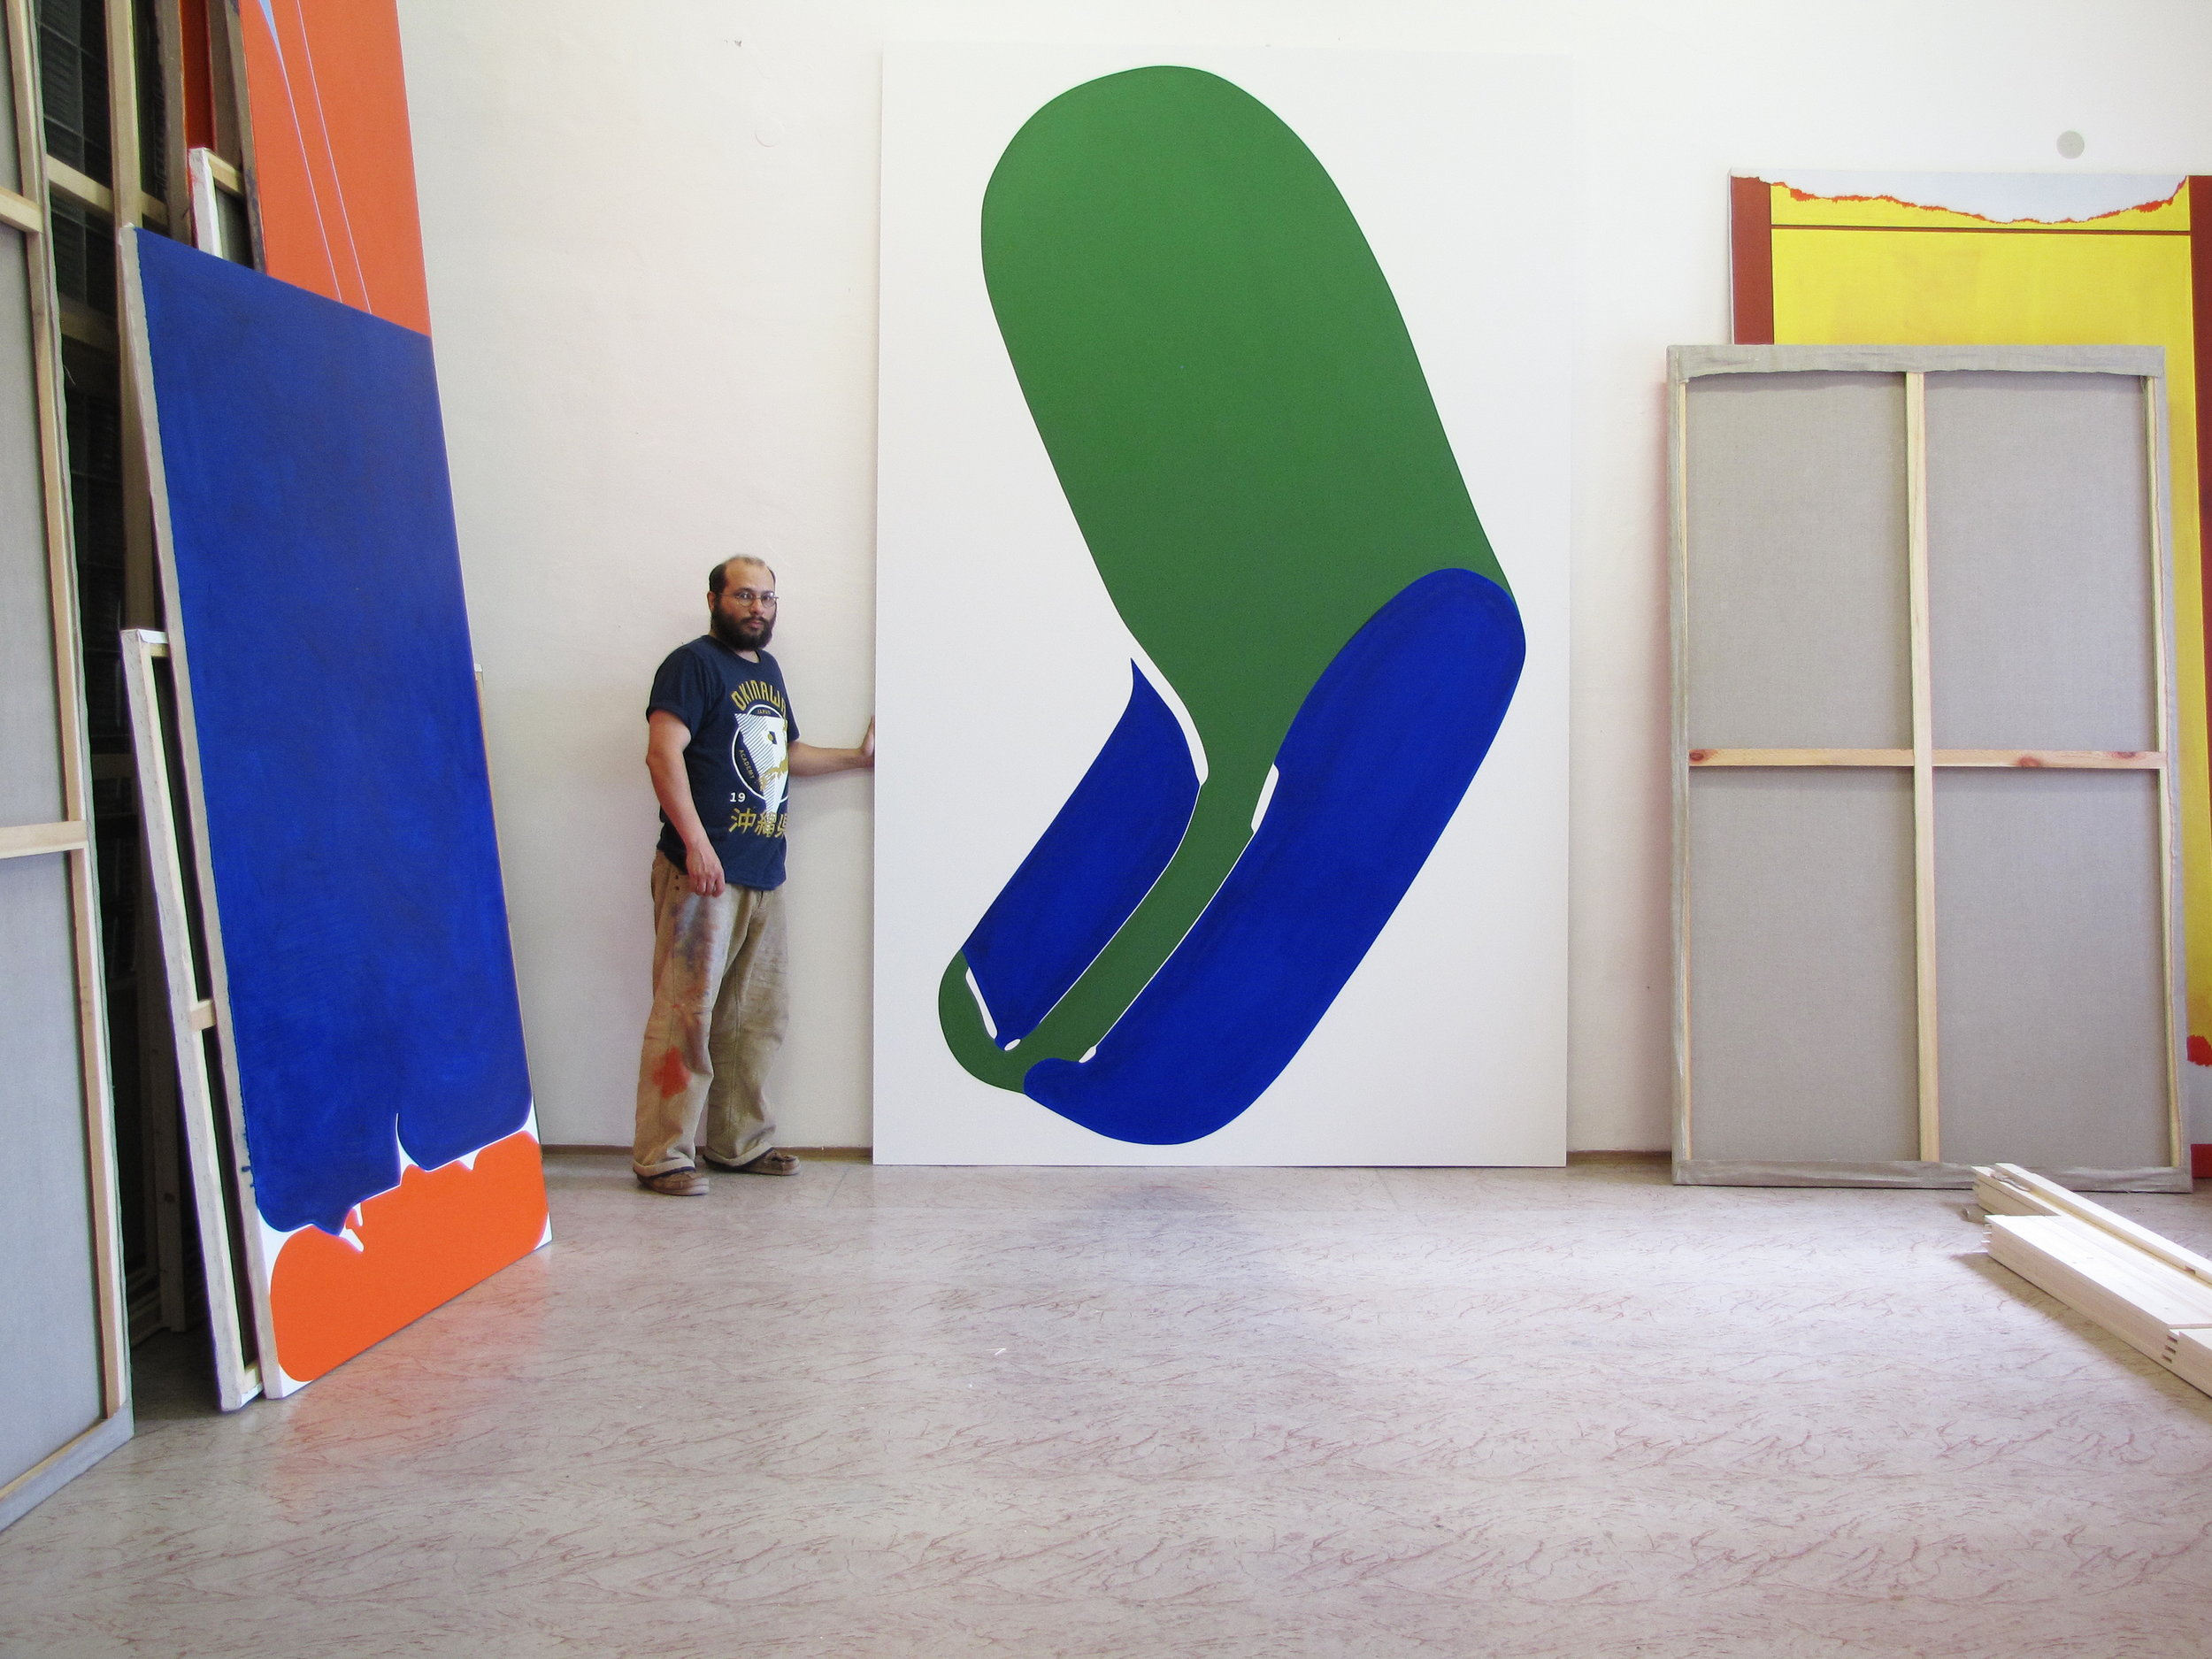 Martin Moflar, Disguise, 2014, Oil on Canvas, 126 x 78 inch (320,4 x 199 cm)